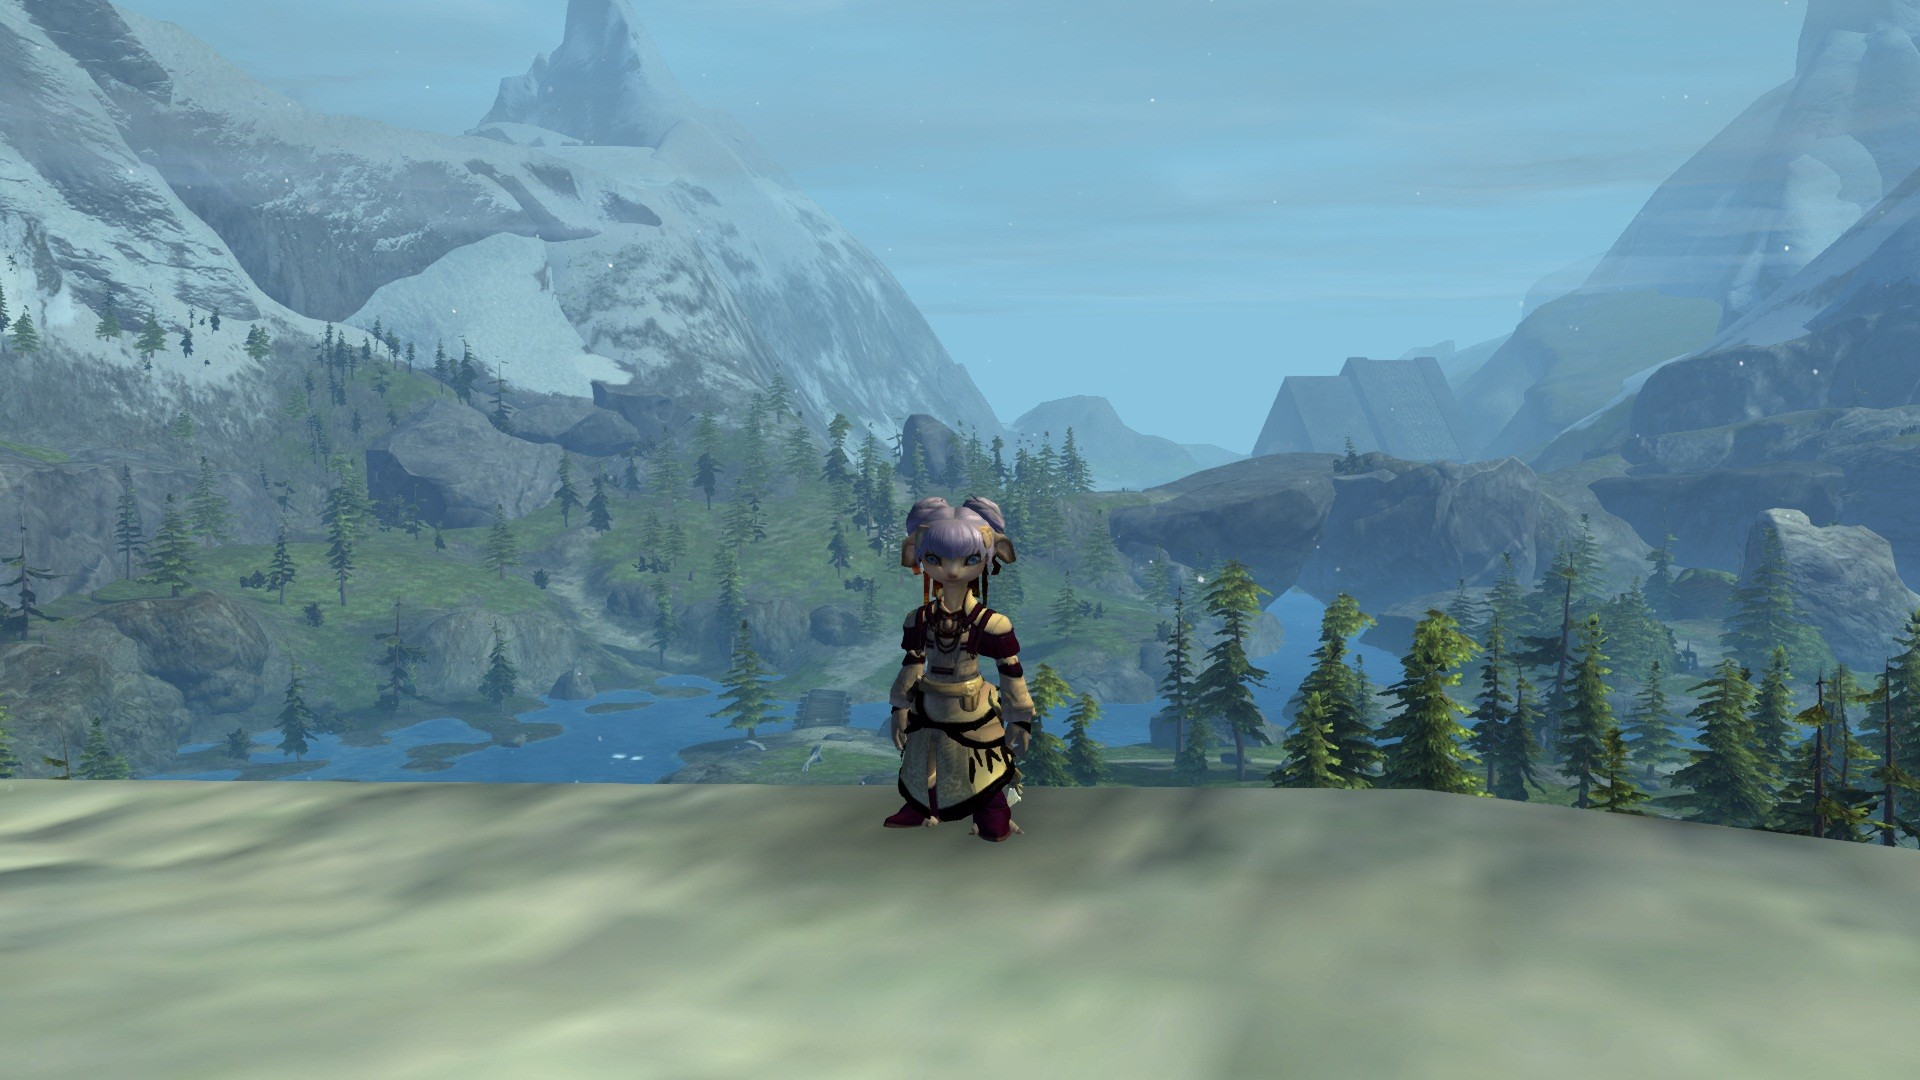 Guild Wars 2 - Just chillin!